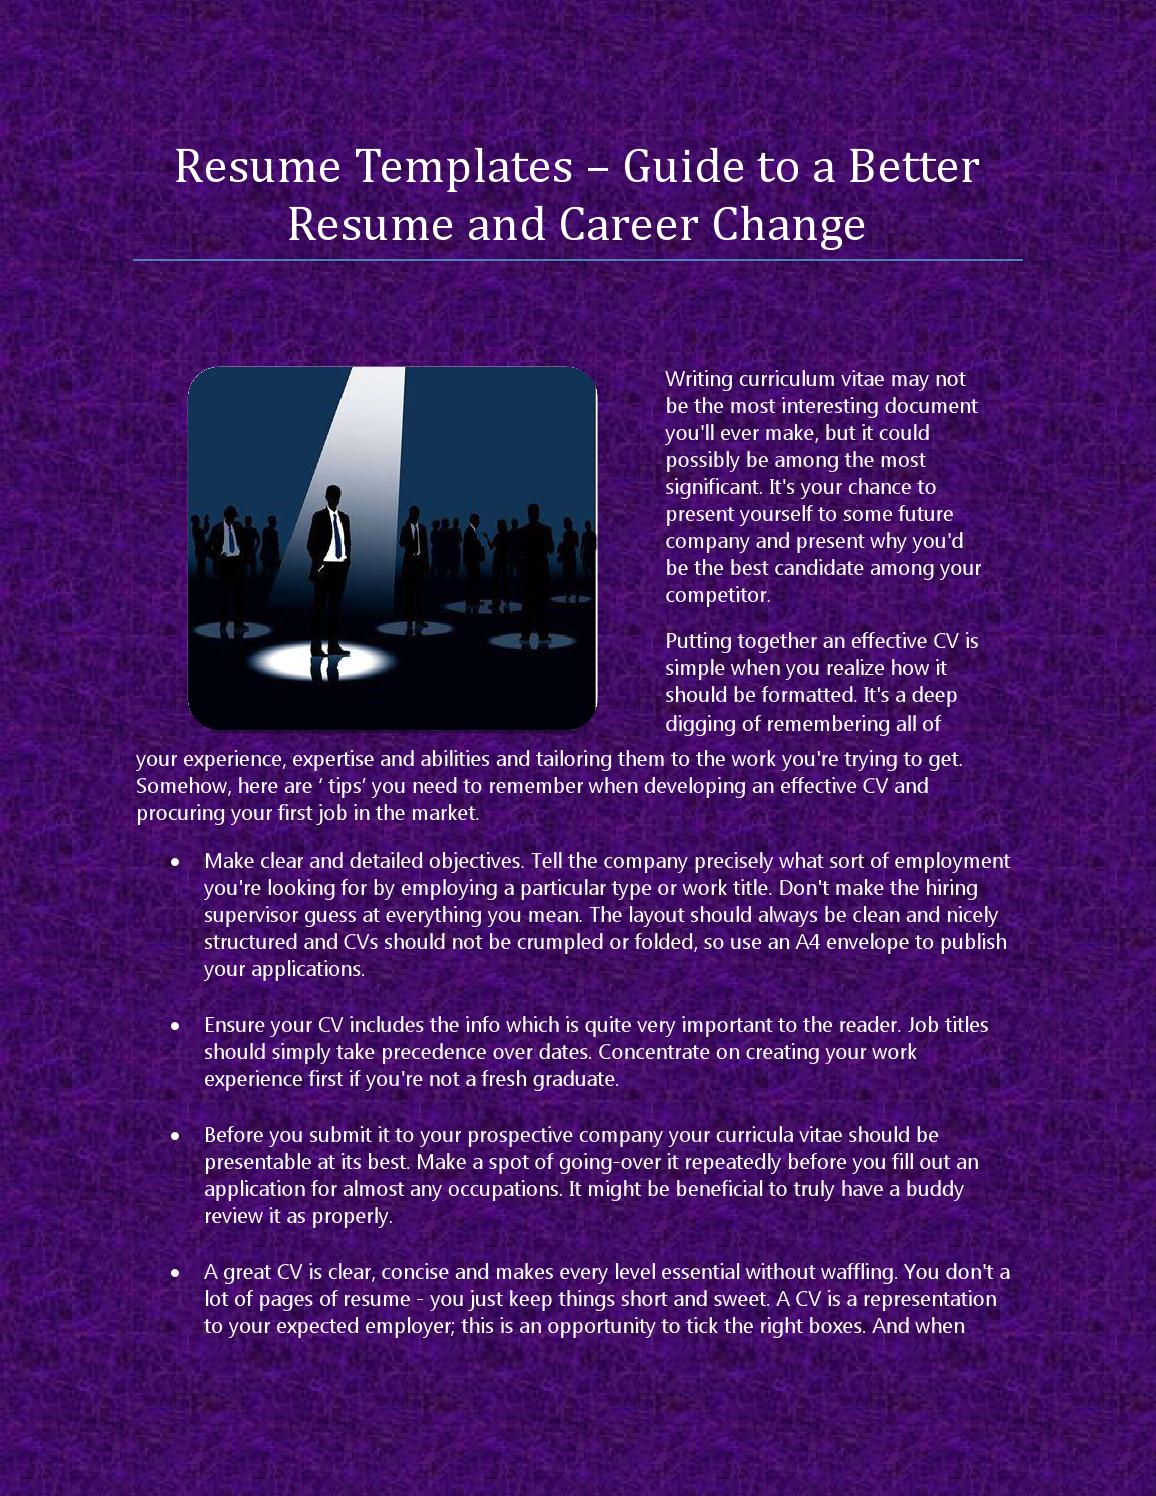 Resume templates – guide to a better resume and career change by ...